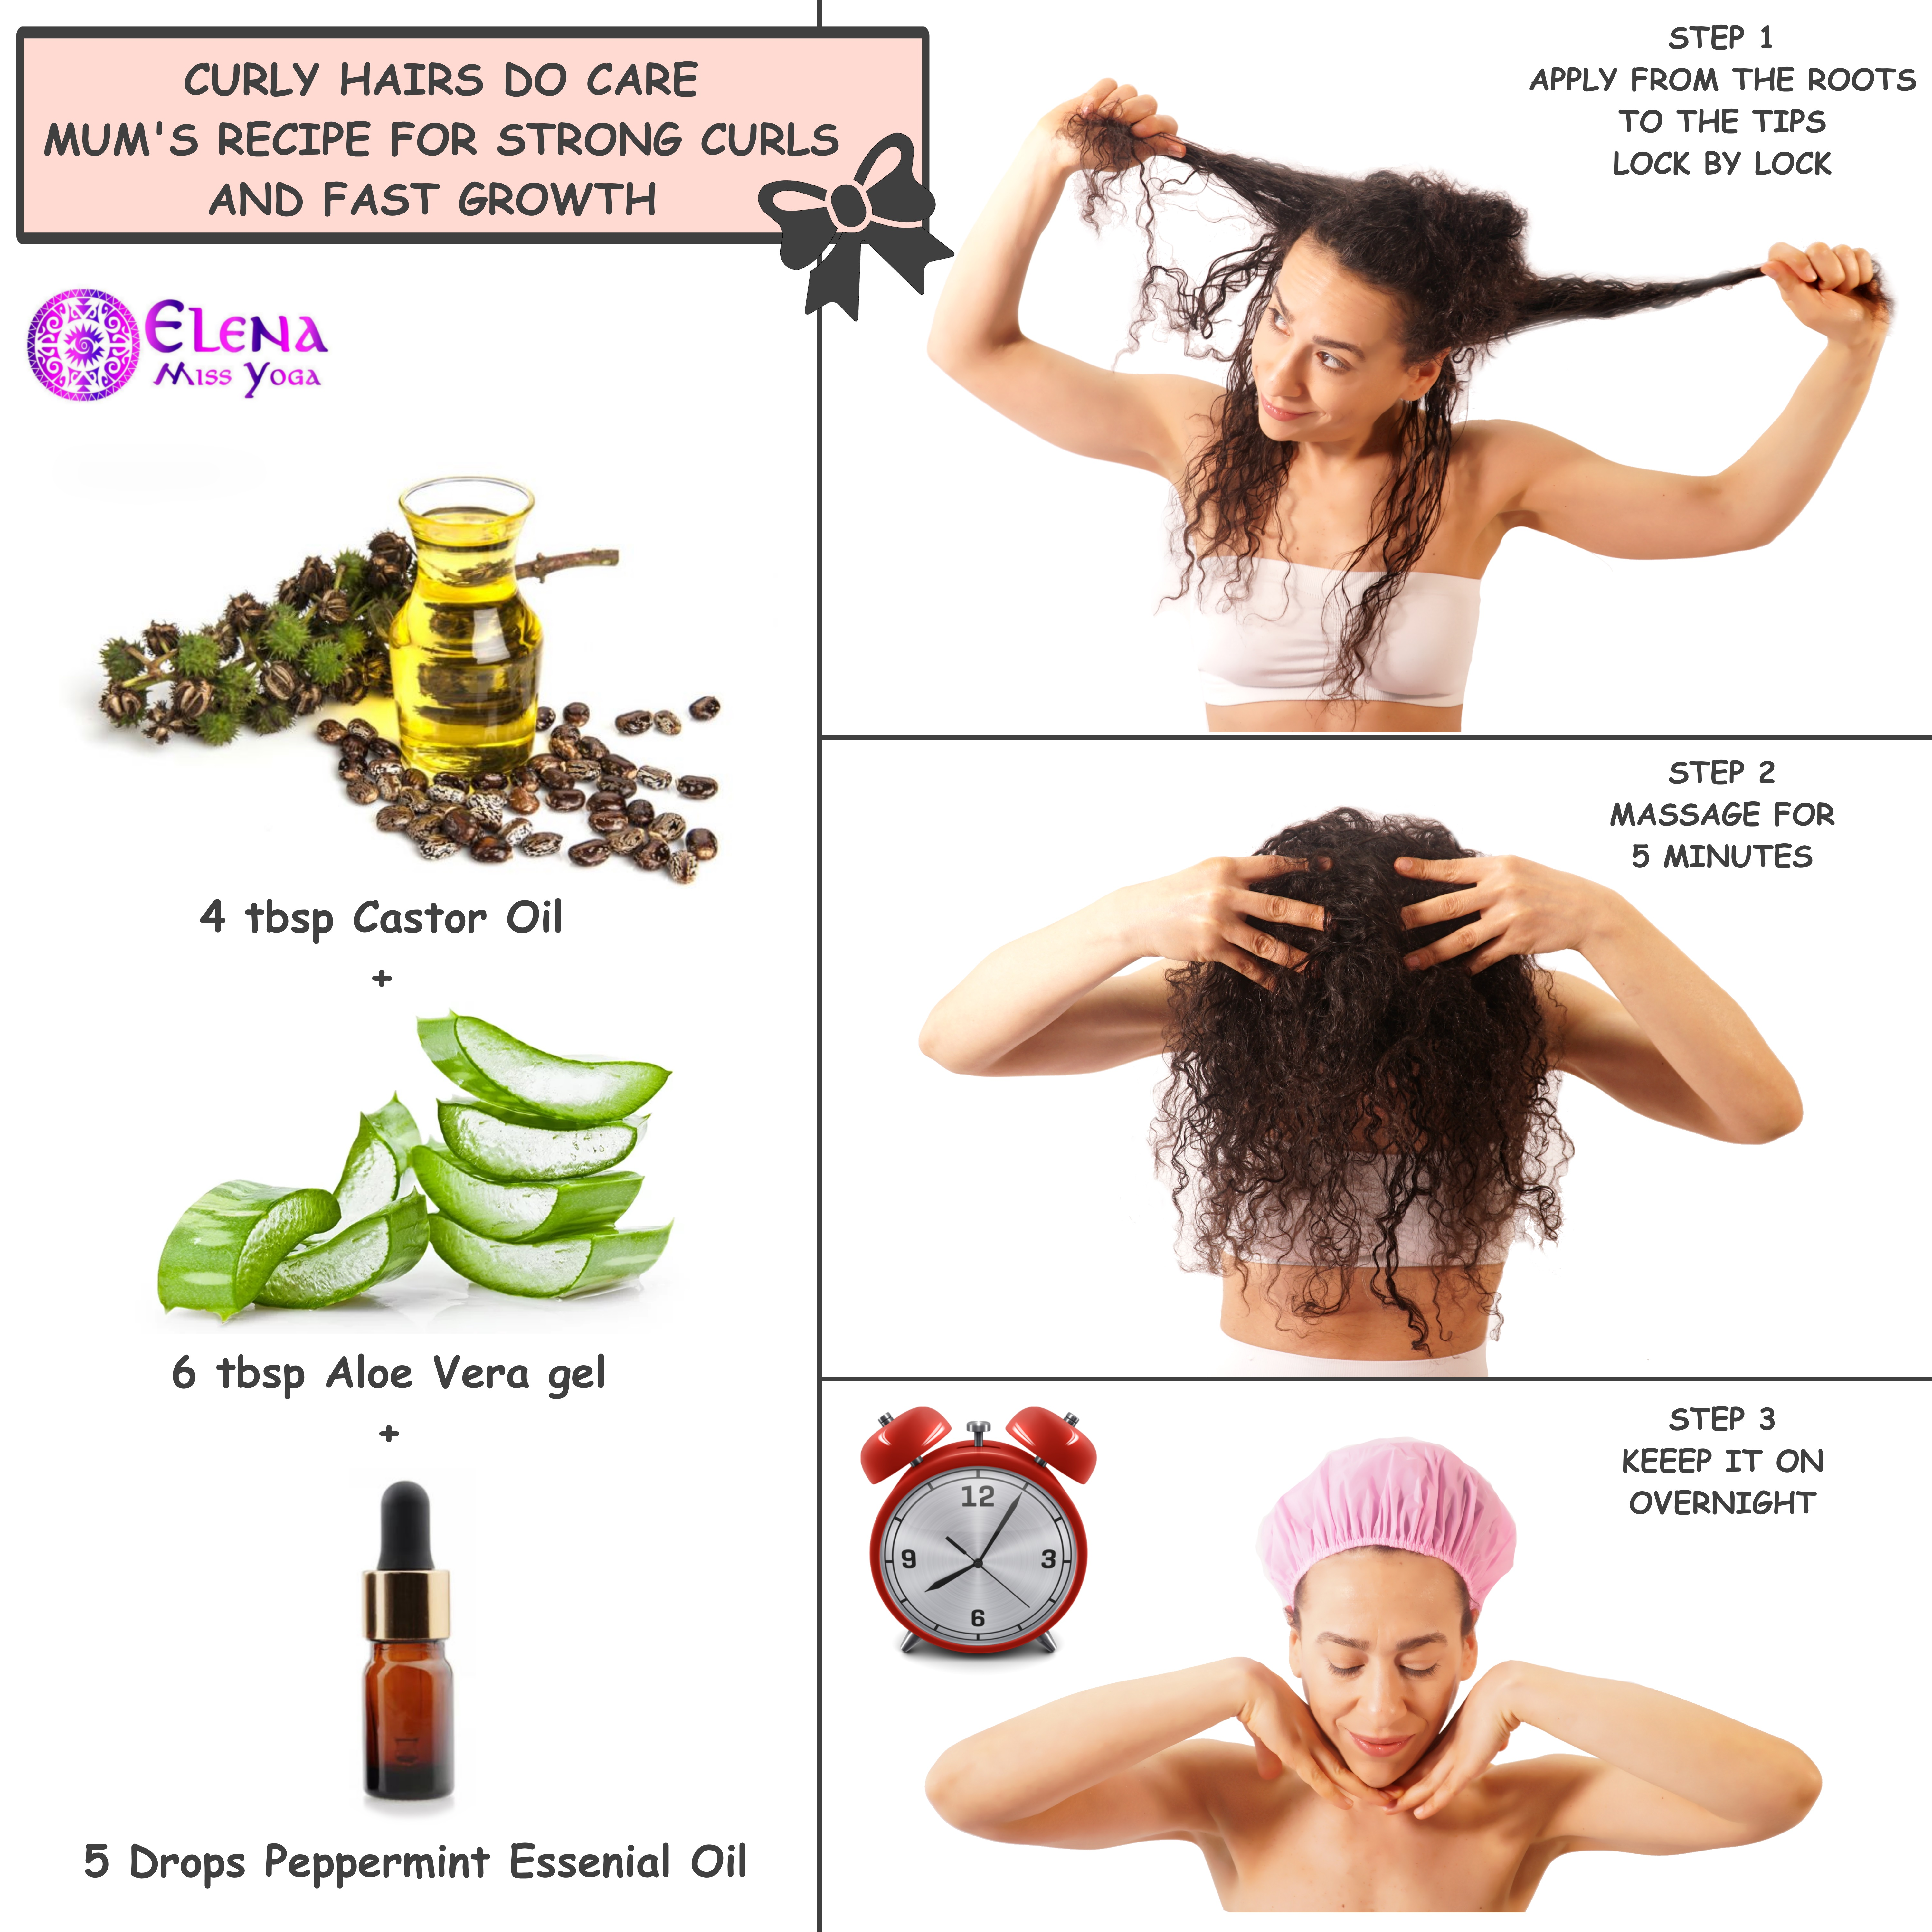 CASTOR OIL HAIR MASK - MUM'S RECIPE FOR STRONG CURLS AND FAST GROWTH